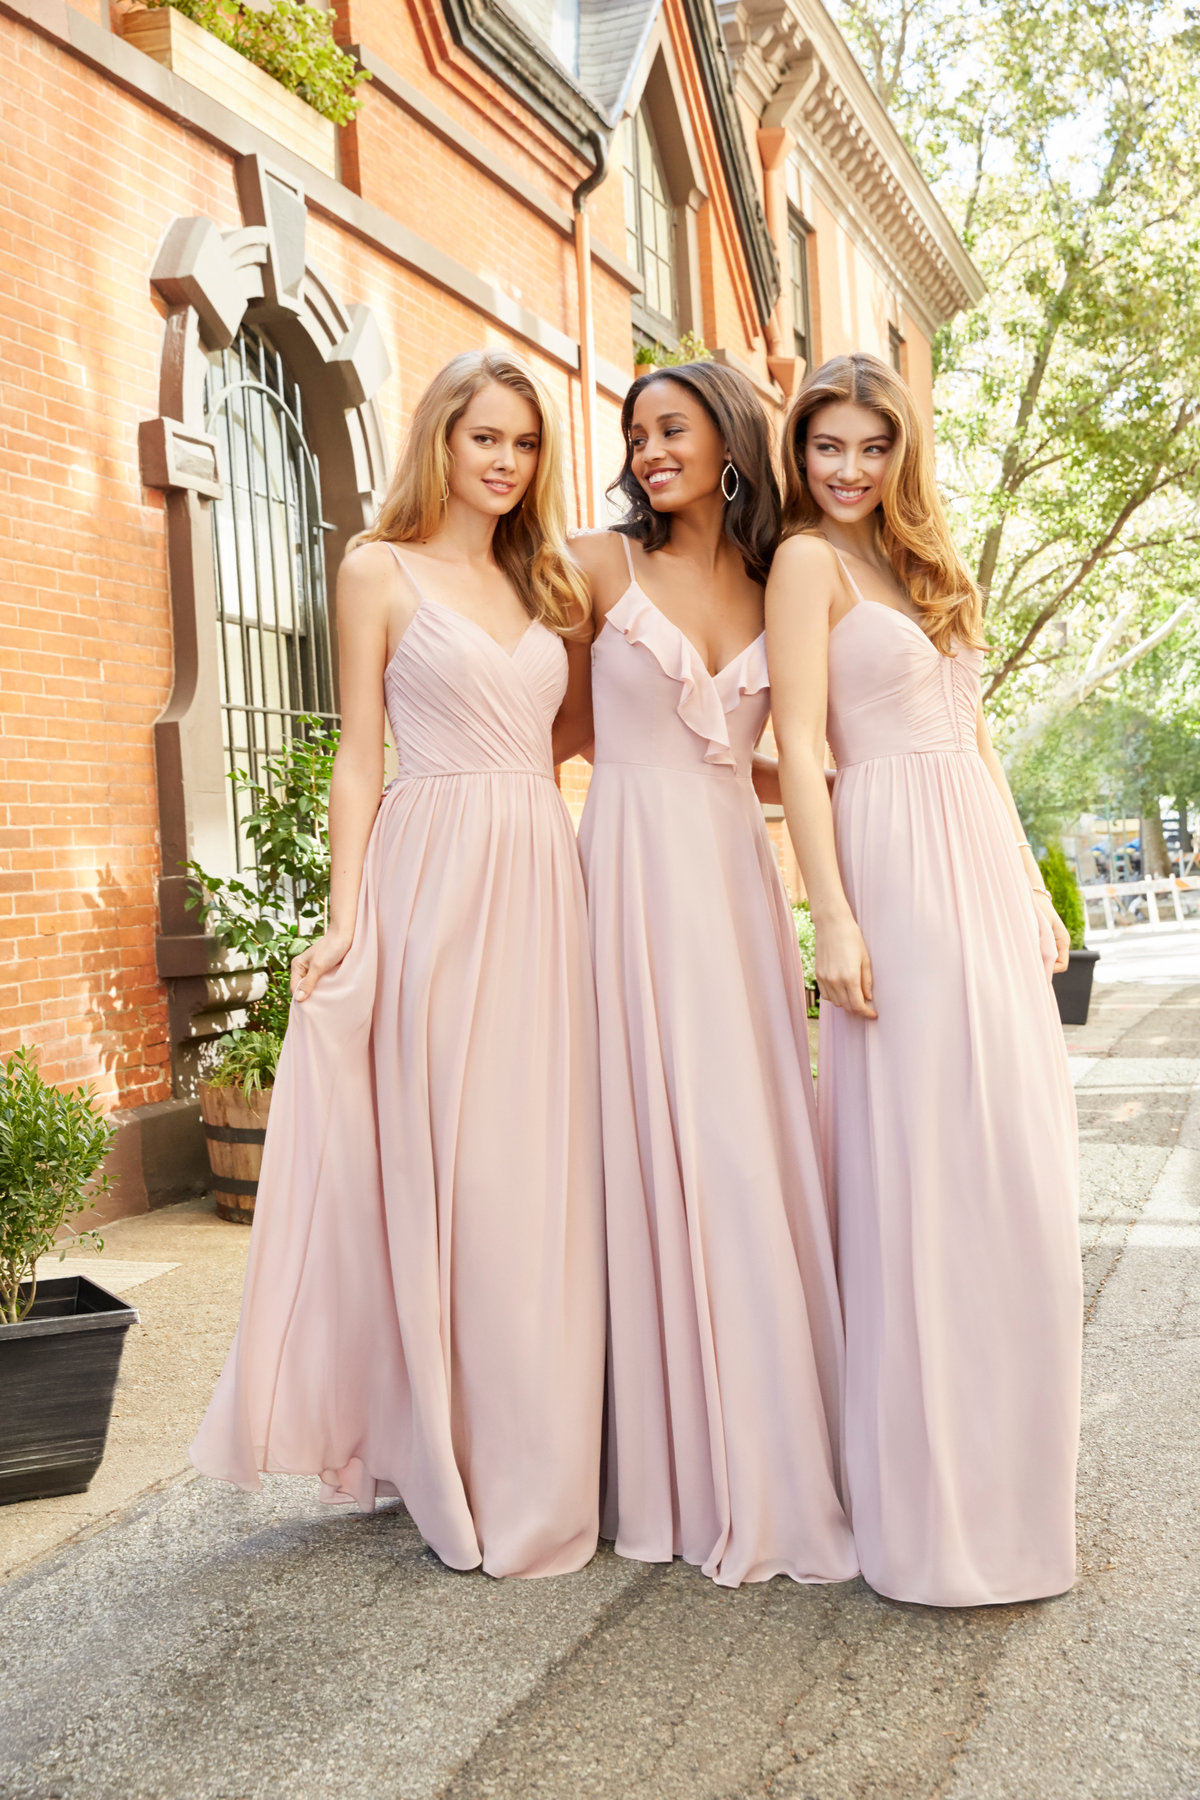 Bridal Gowns And Wedding Dresses By Jlm Couture Style 5806